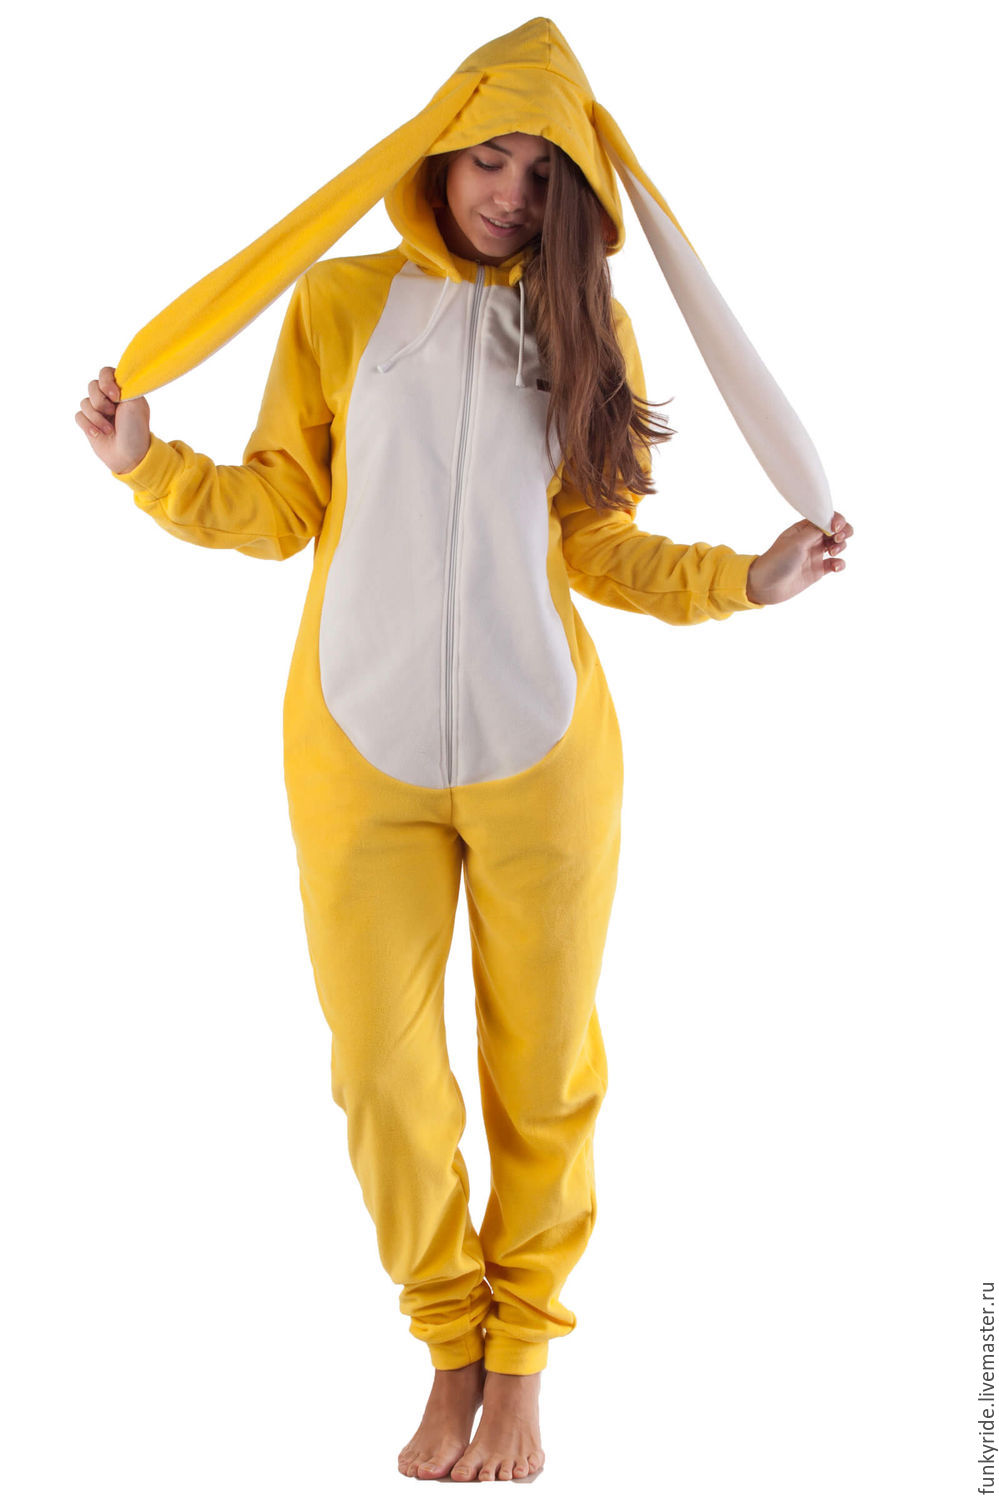 Home jumpsuit Sunny Bunny SUNNY BUNNY, FUNKY HOME SUIT, Jumpsuits & Rompers, Magnitogorsk,  Фото №1